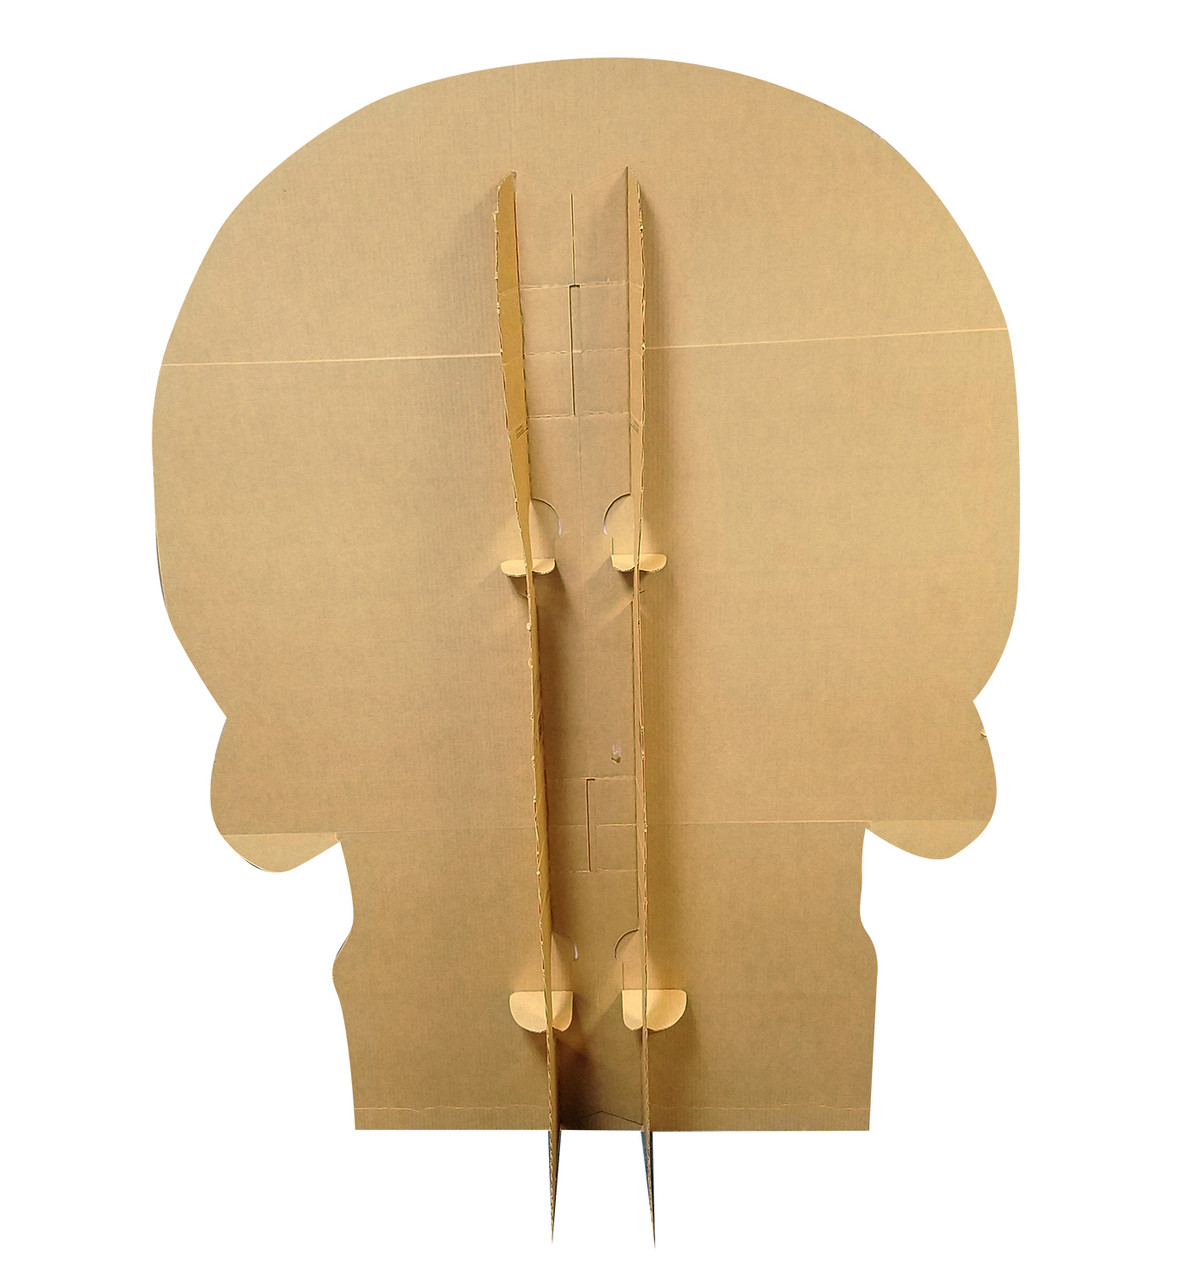 Life-size Day of the Dead Skull Cardboard Standup